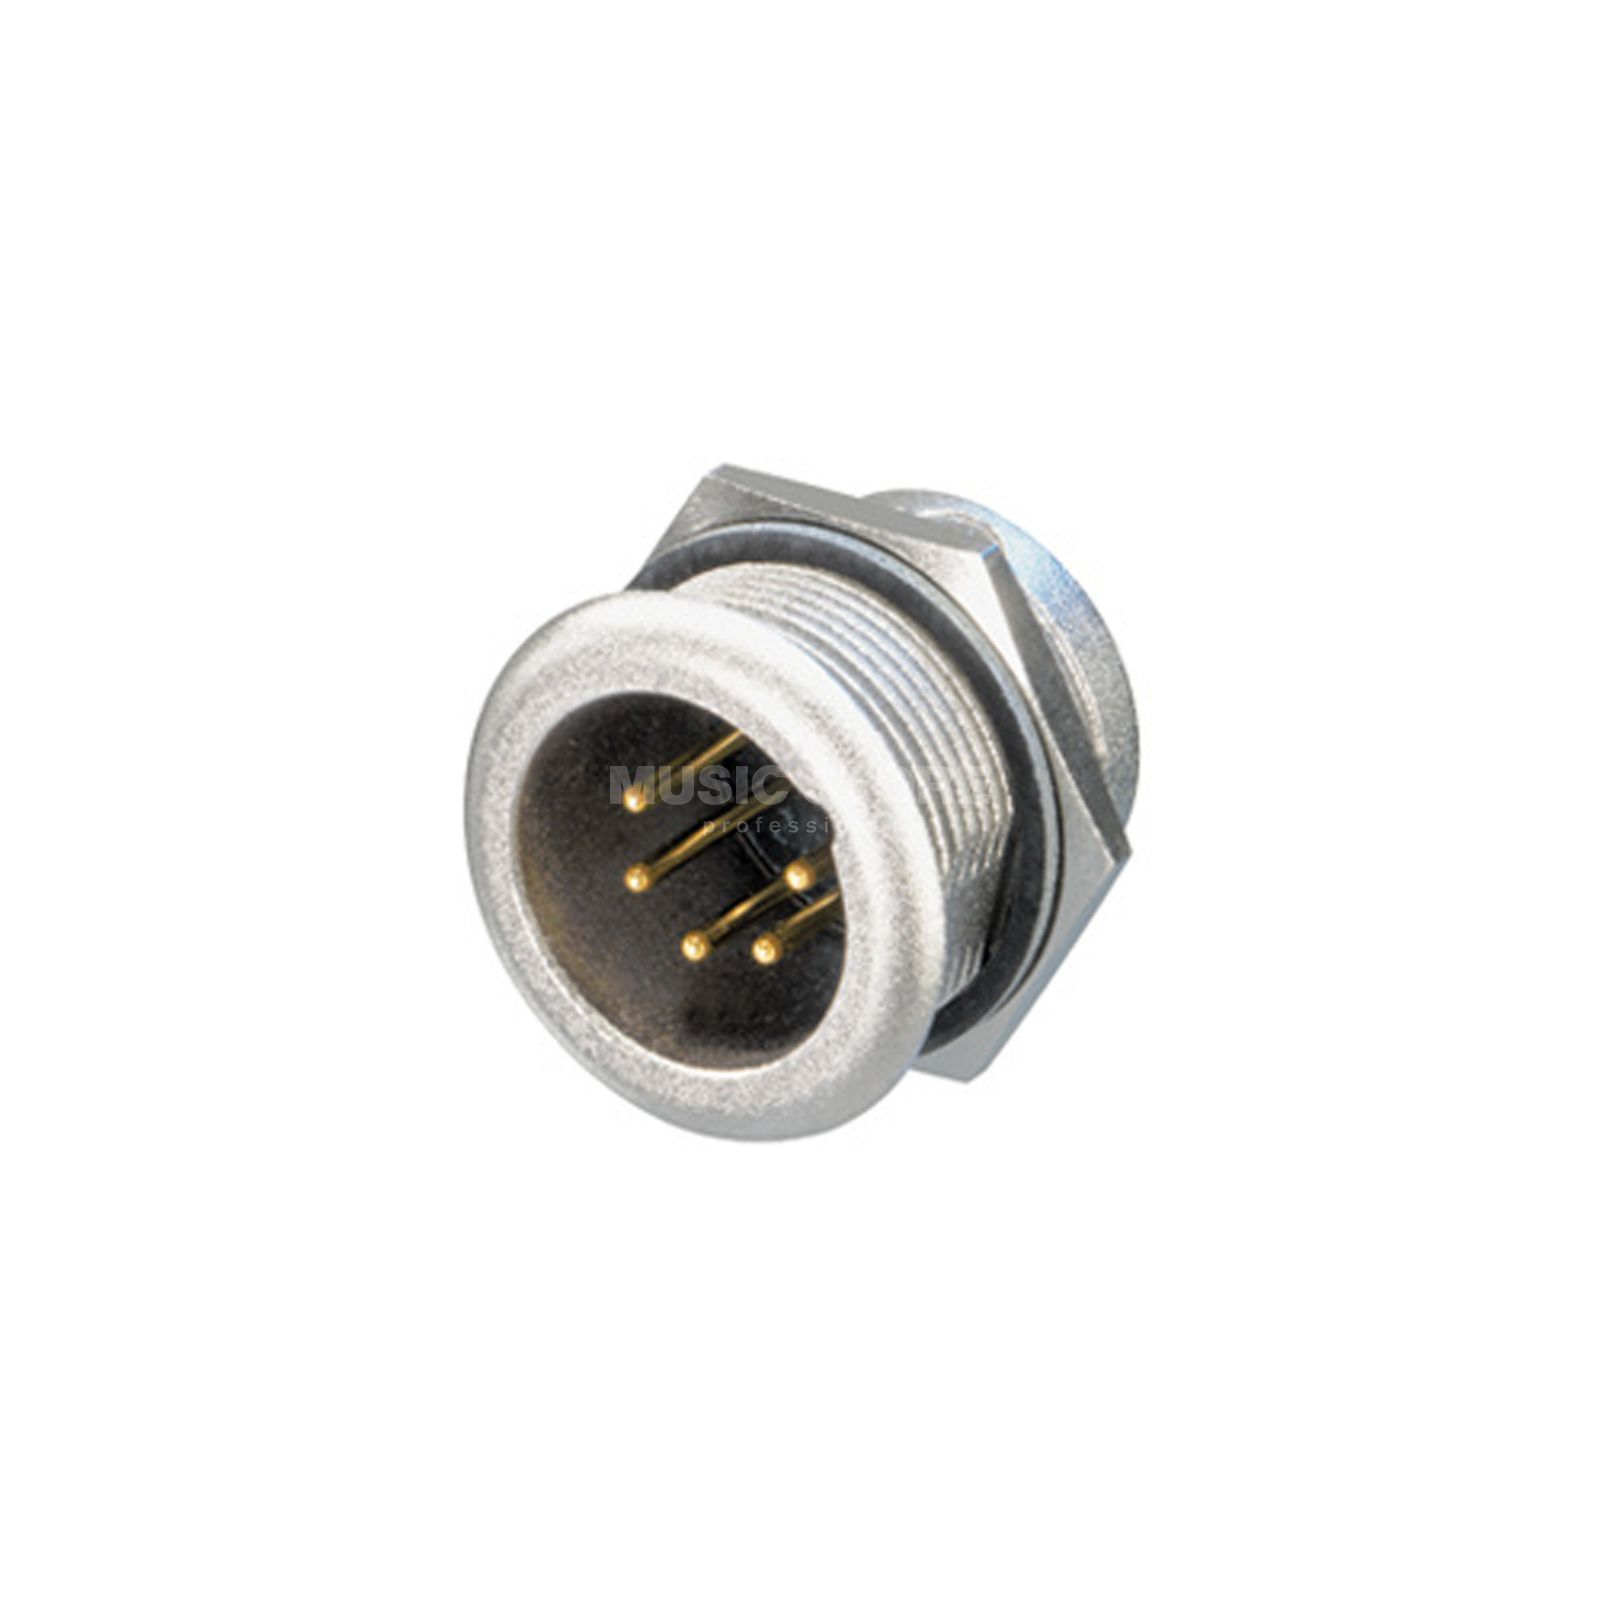 Neutrik NC5MPR-HD Chassis Connector male, 5-pole Produktbillede